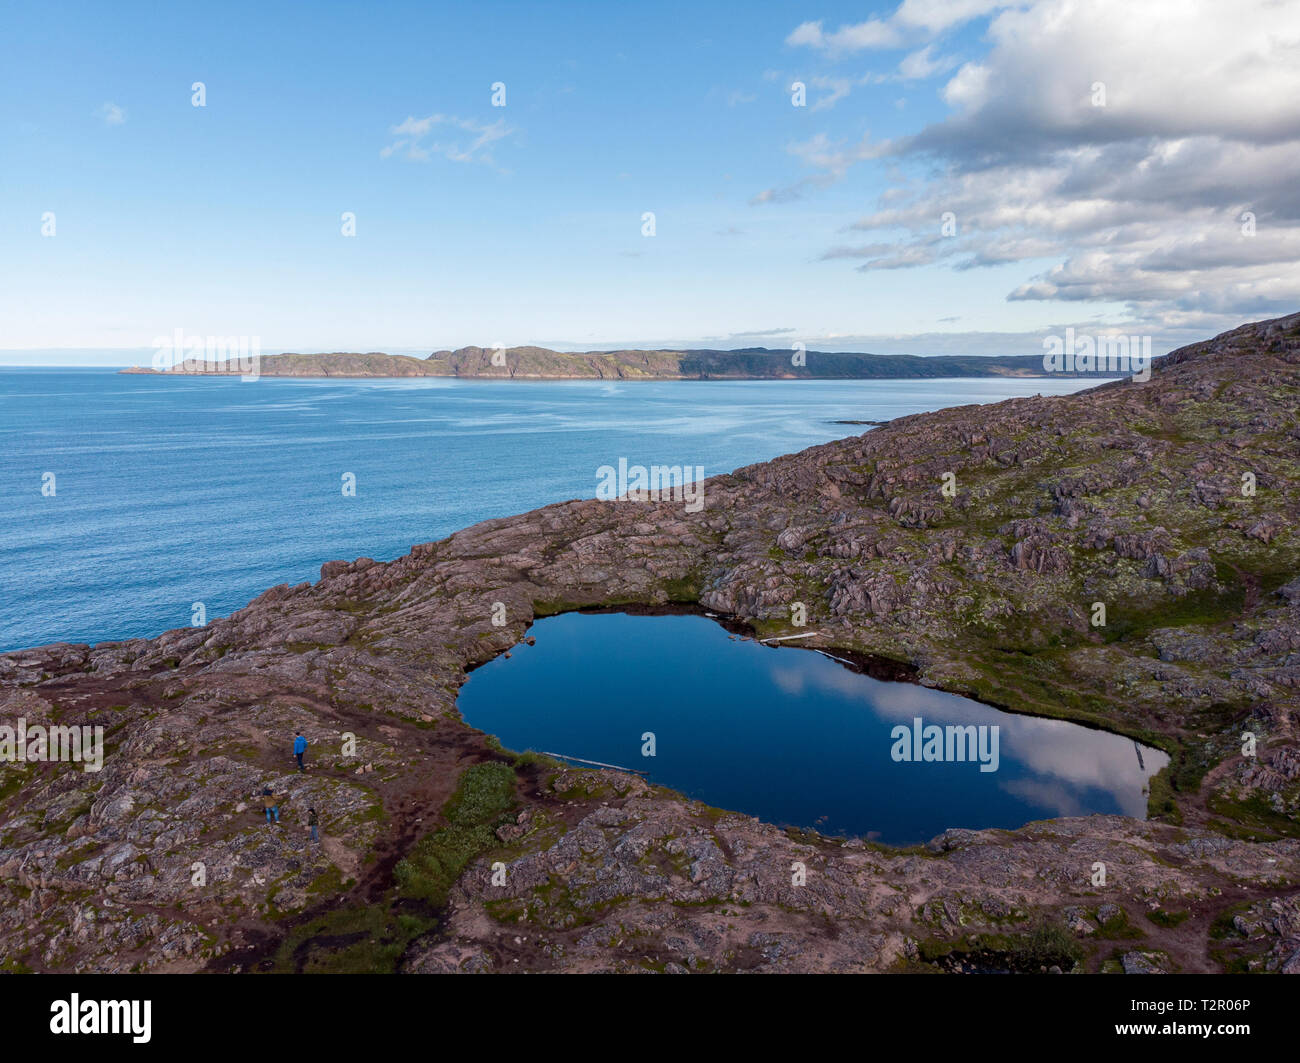 Ocean view from drone - Stock Image